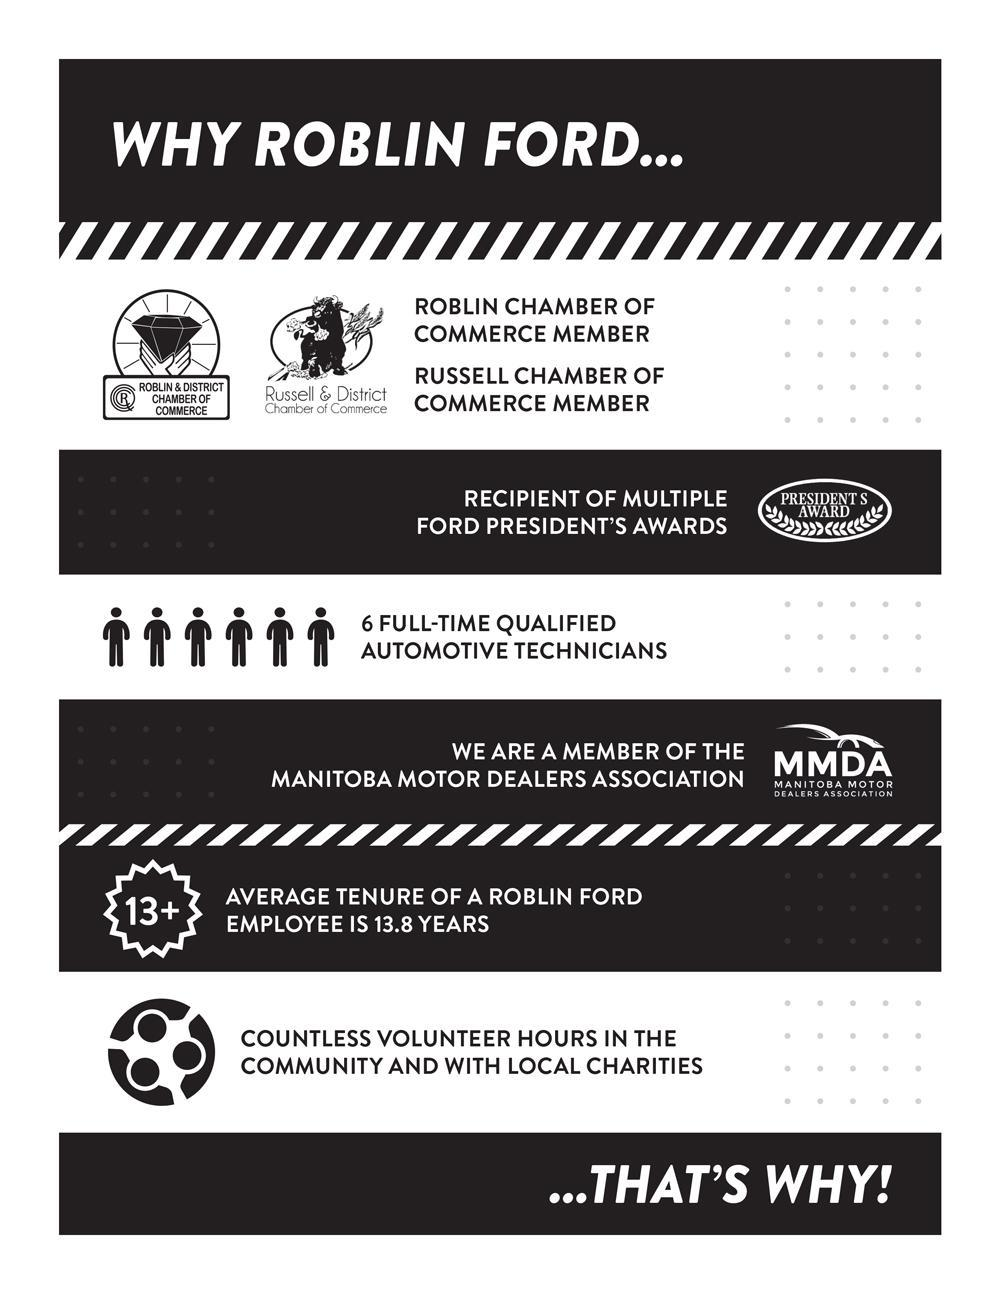 why roblin ford infographic